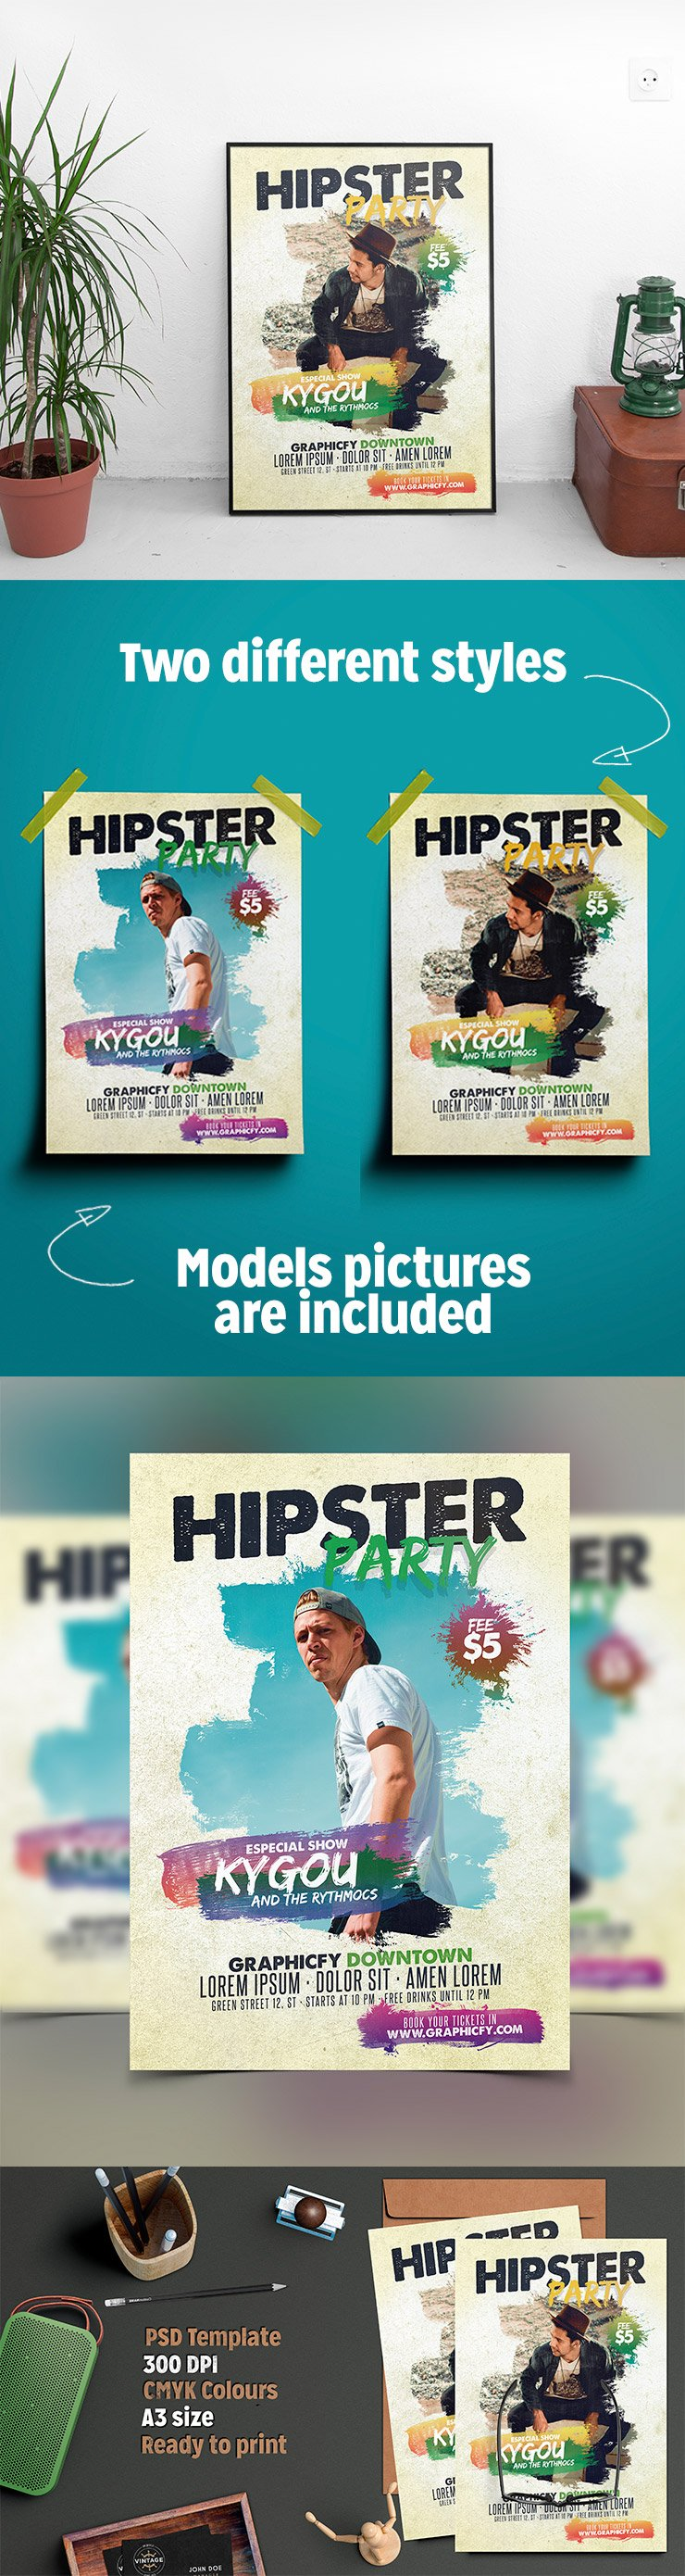 Hipster Flyer Template